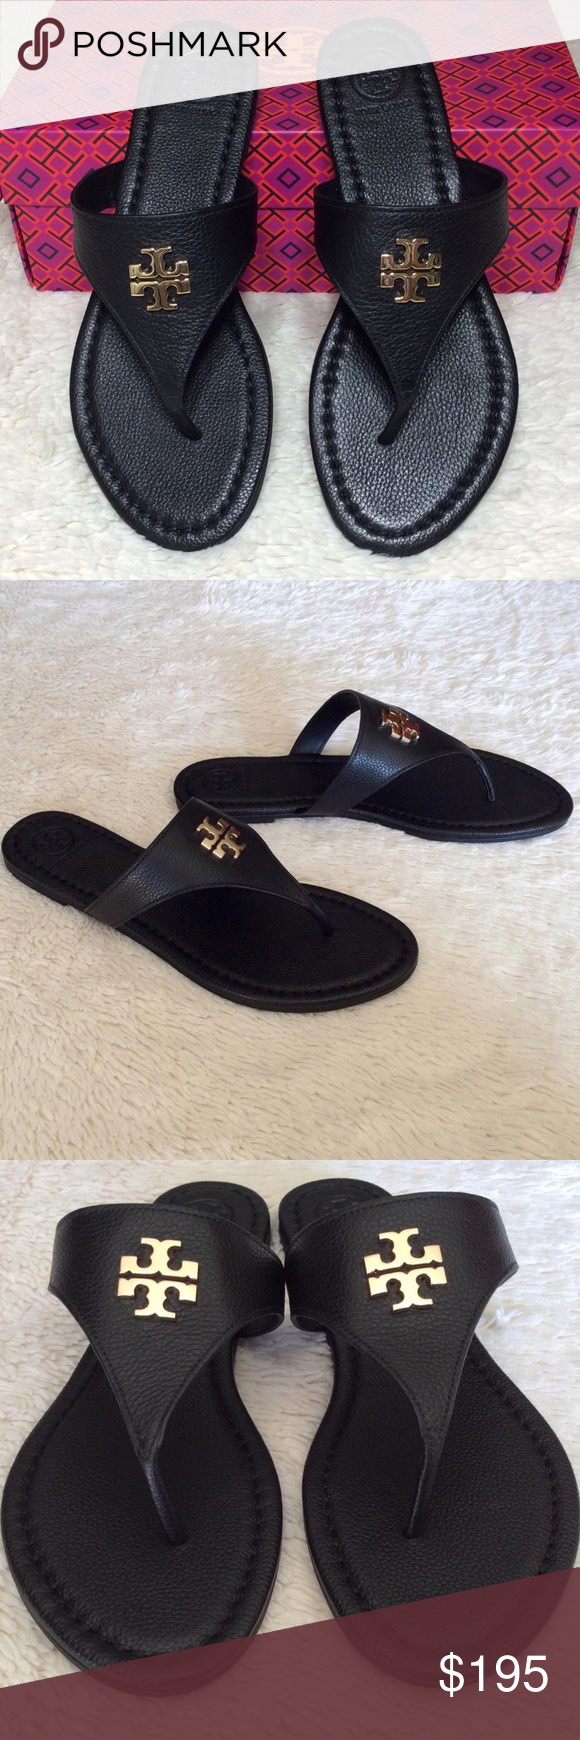 346607d862c NEW TORY BURCH LAURA THONG SANDALS TUMBLED LEATHER Authentic. Brand new  with tags.